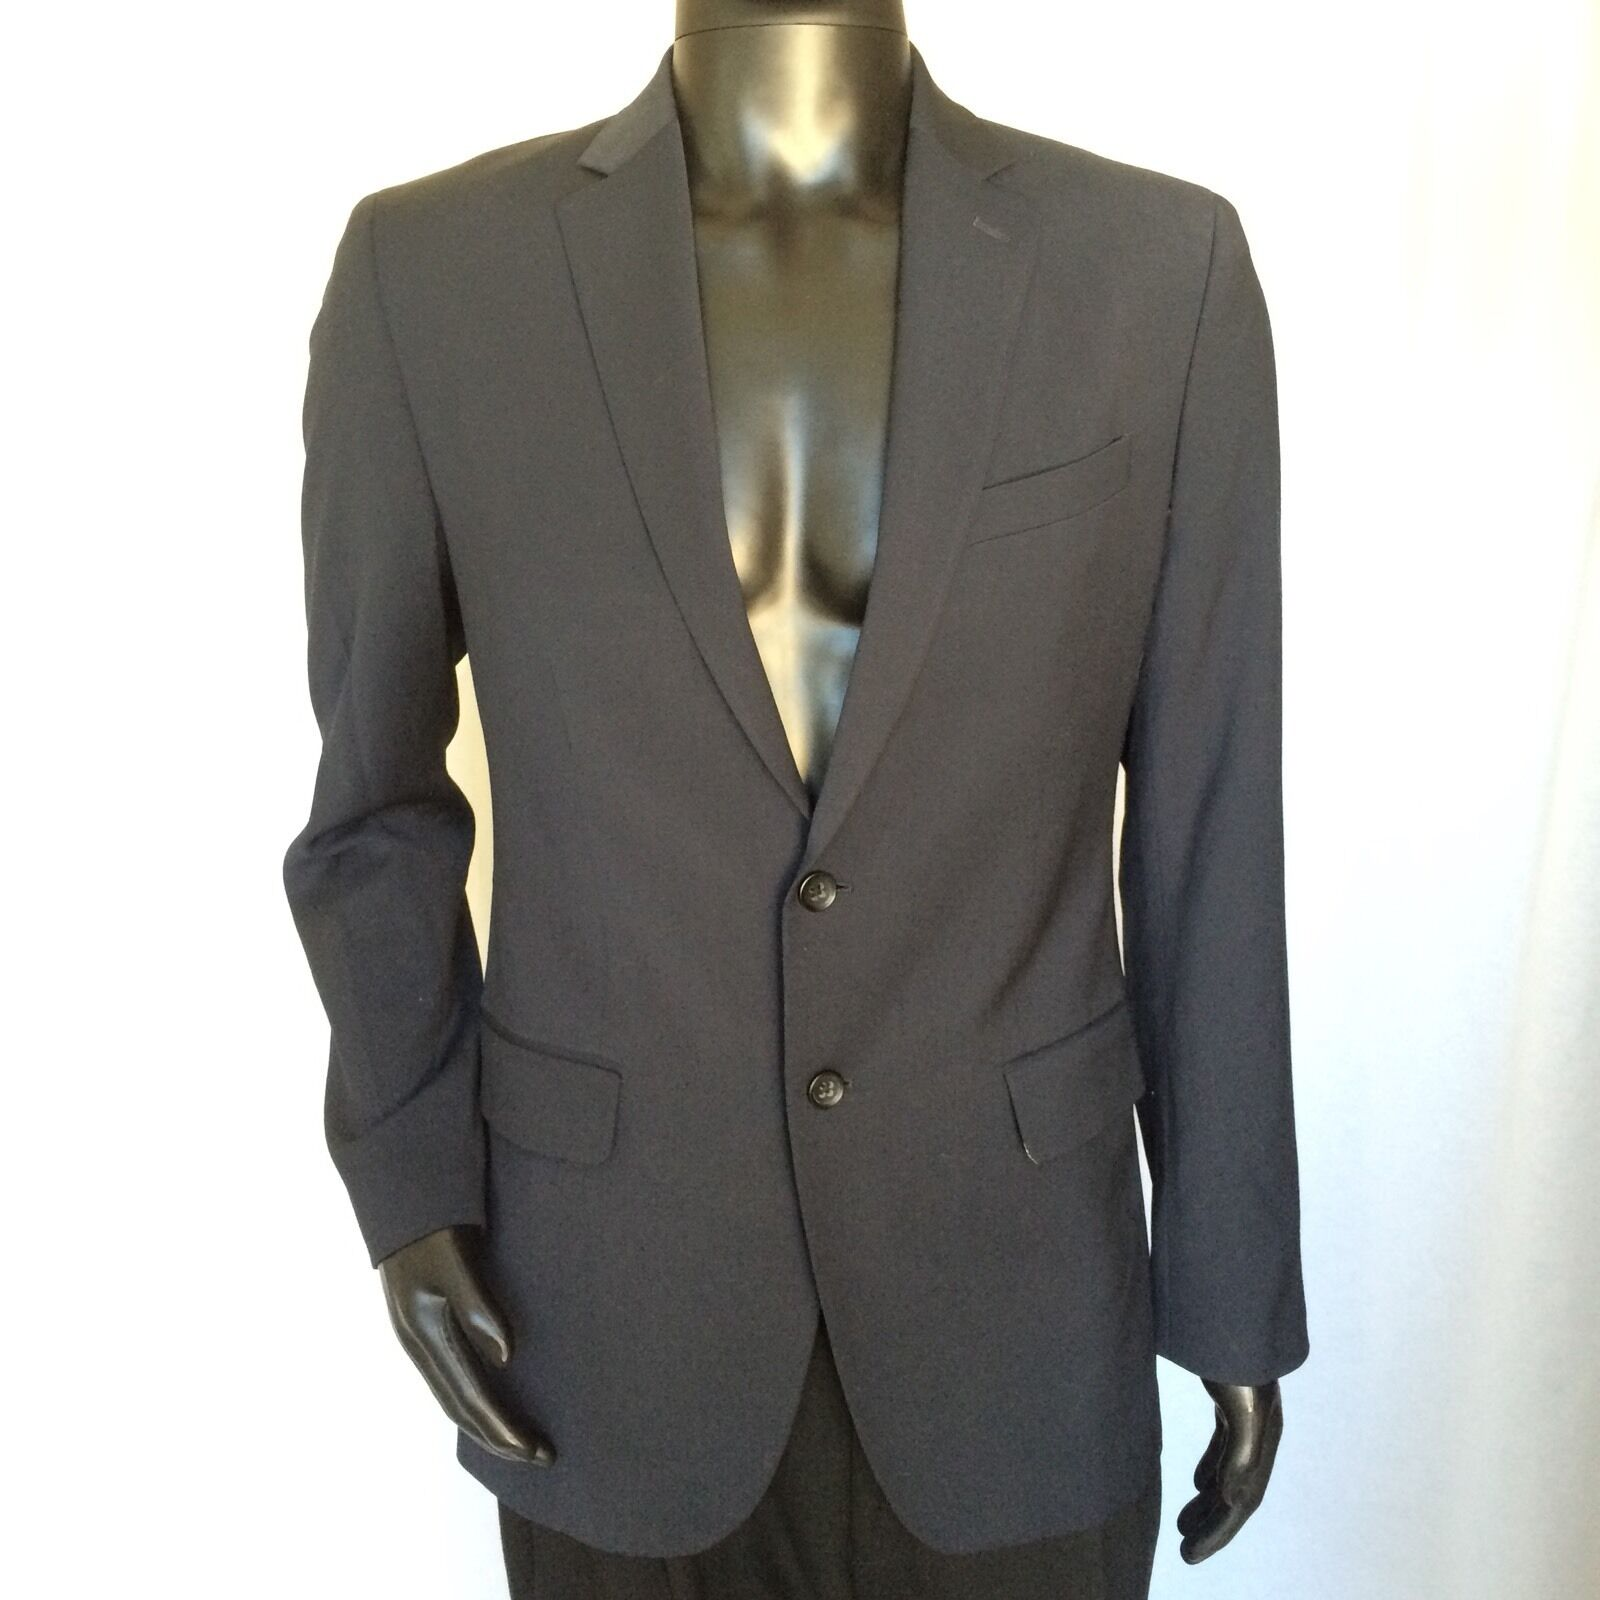 Banana Republic  Herren TailoROT Fit Wool Blazer Größe 38 Regular Blau Suit Coat